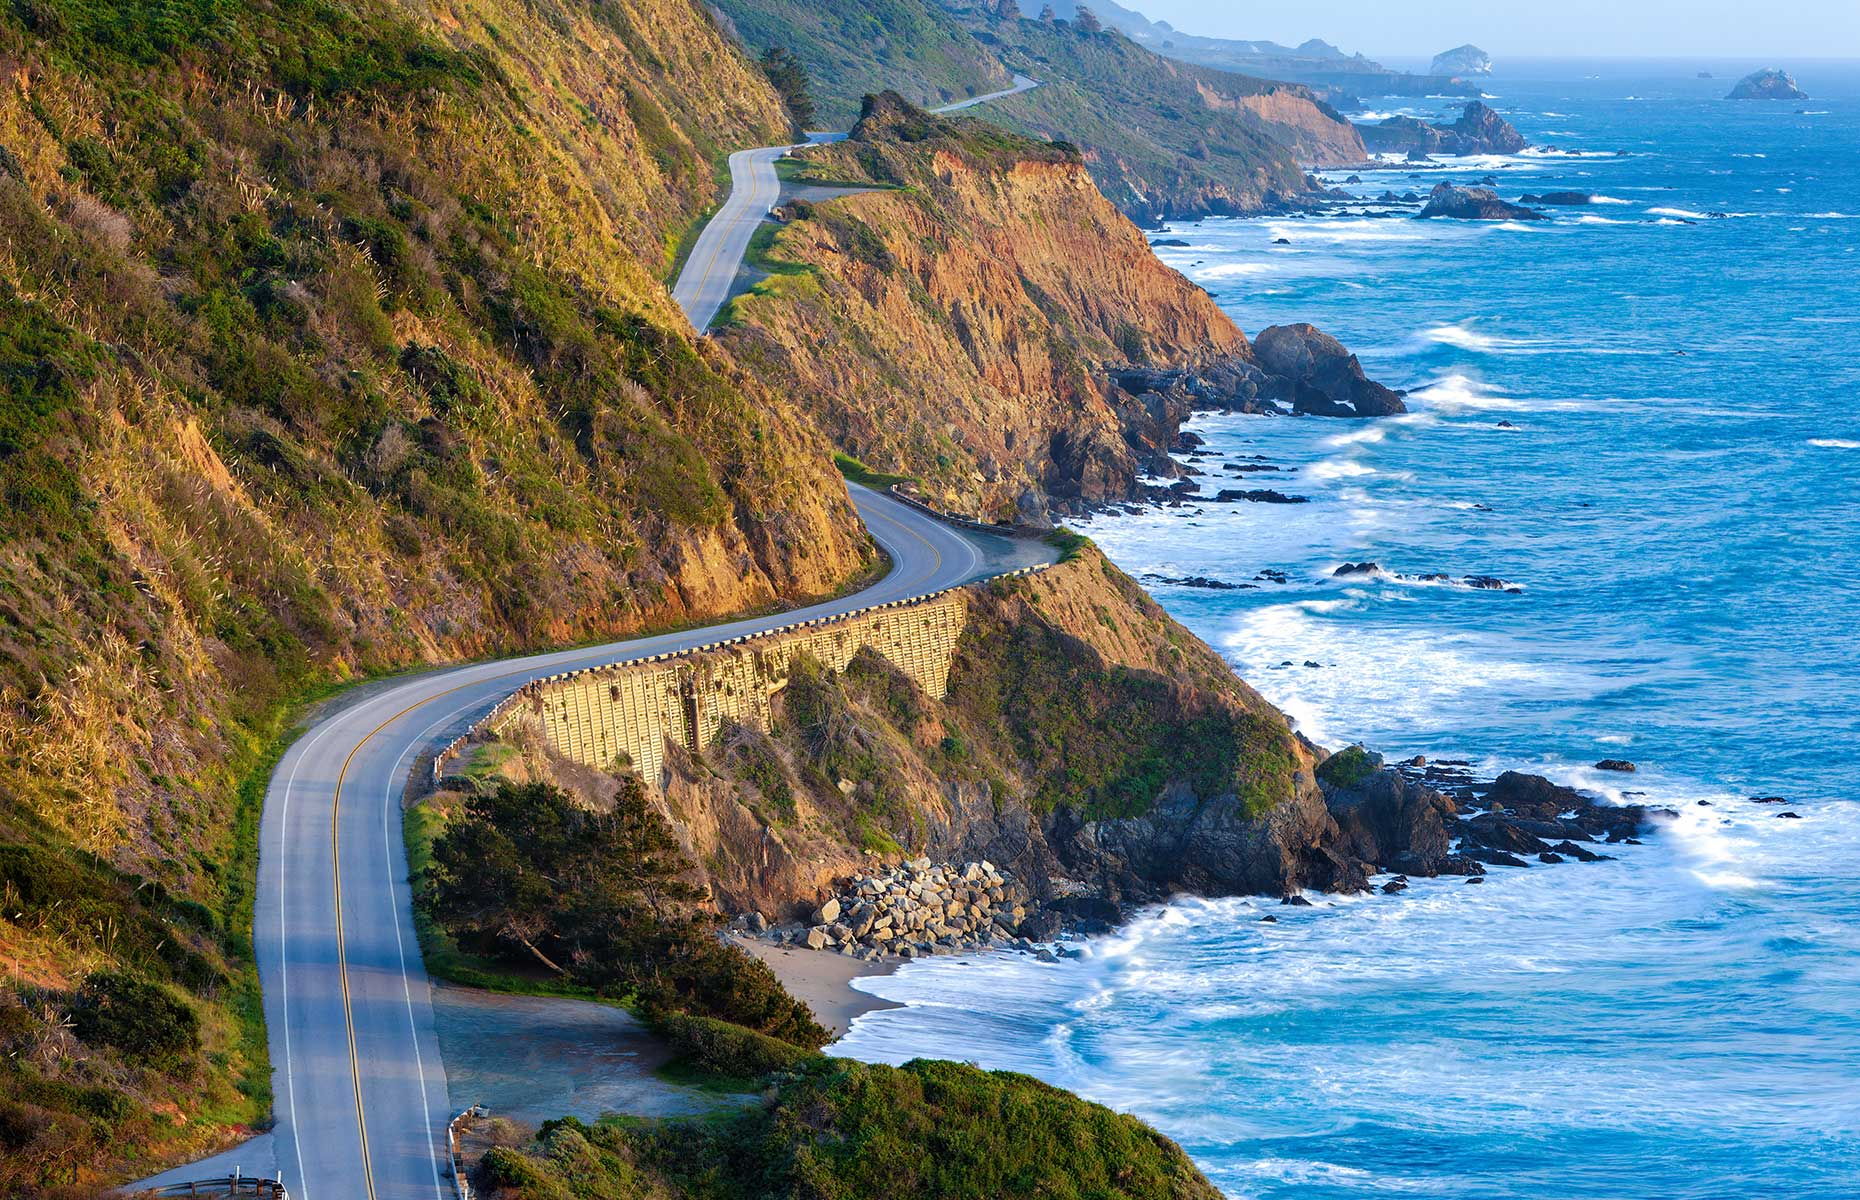 California S Central Coast Road Trip The Top Things To Do Where To Stay What To Eat Loveexploring Com